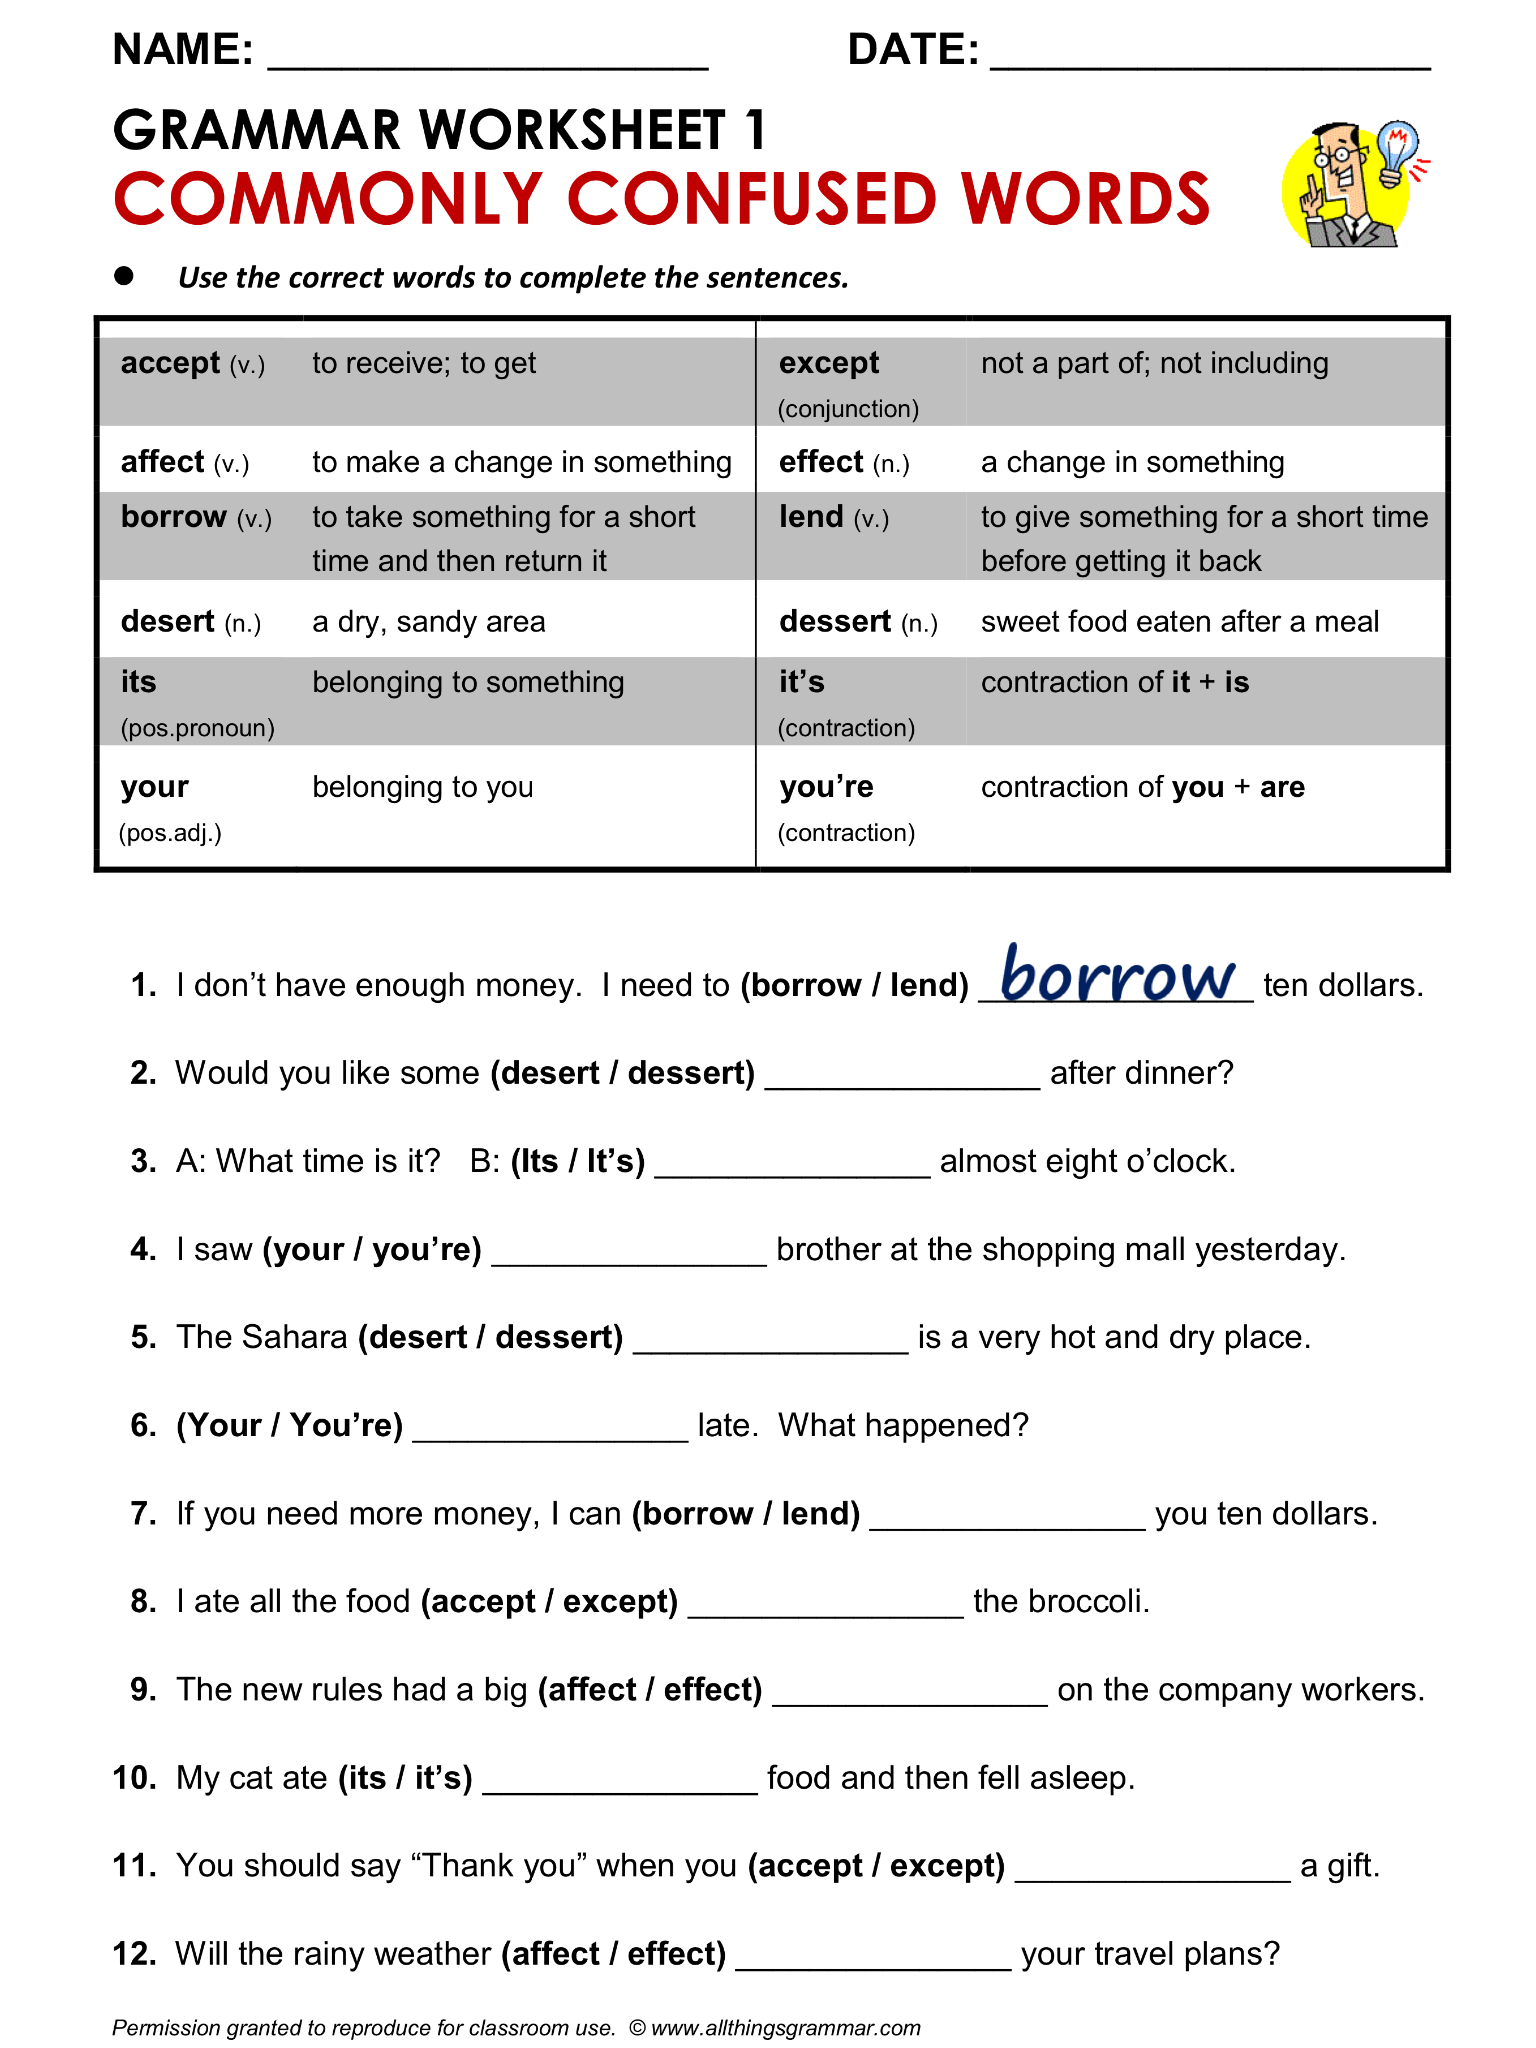 English Grammar Worksheet Commonly Confused Words 1 – Affect Effect Worksheet